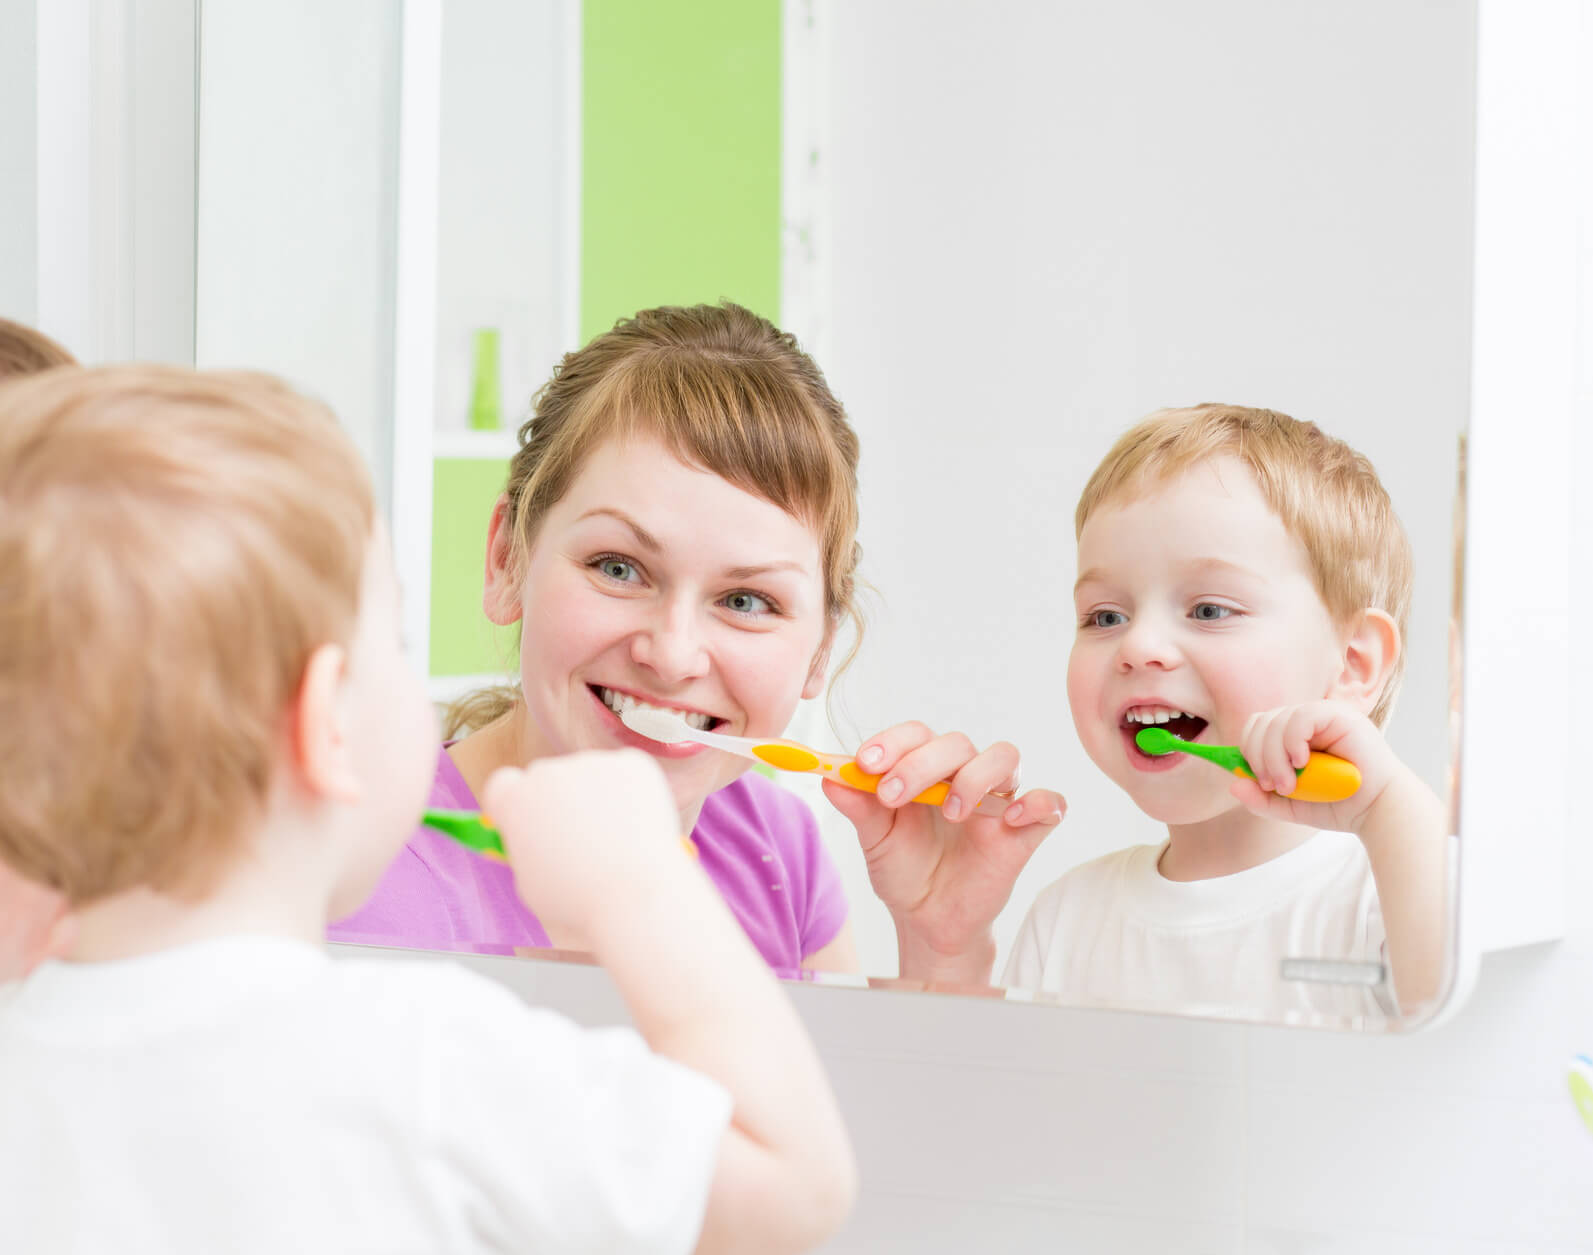 Redwood Pediatric Dentistry is a great childrens dental office that can help your kid develop great oral hygiene